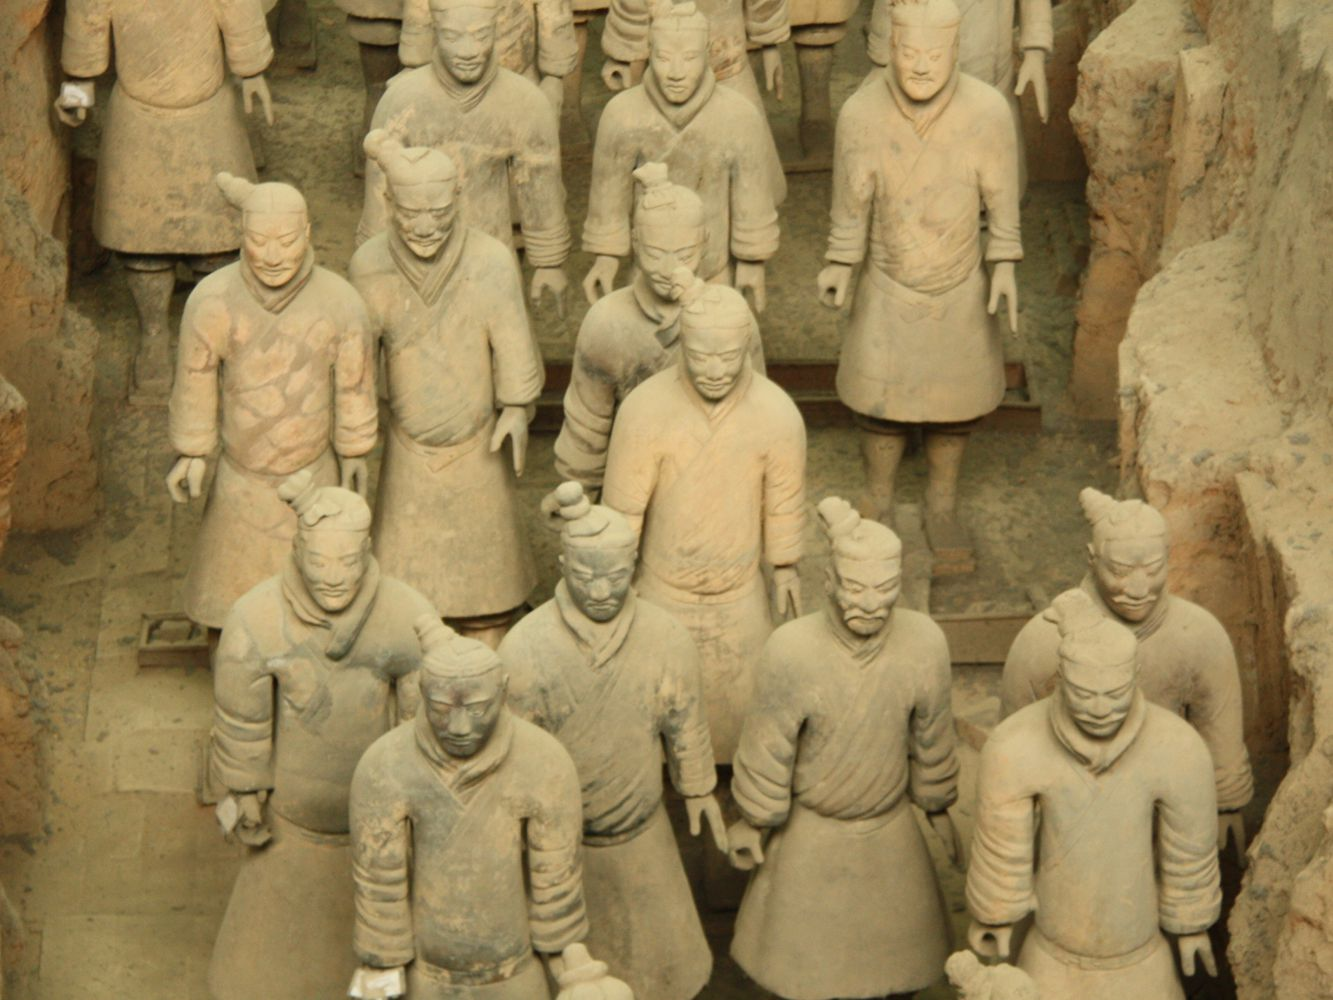 A History of Xi'an, the Ancient Capital of the Tang Dynasty